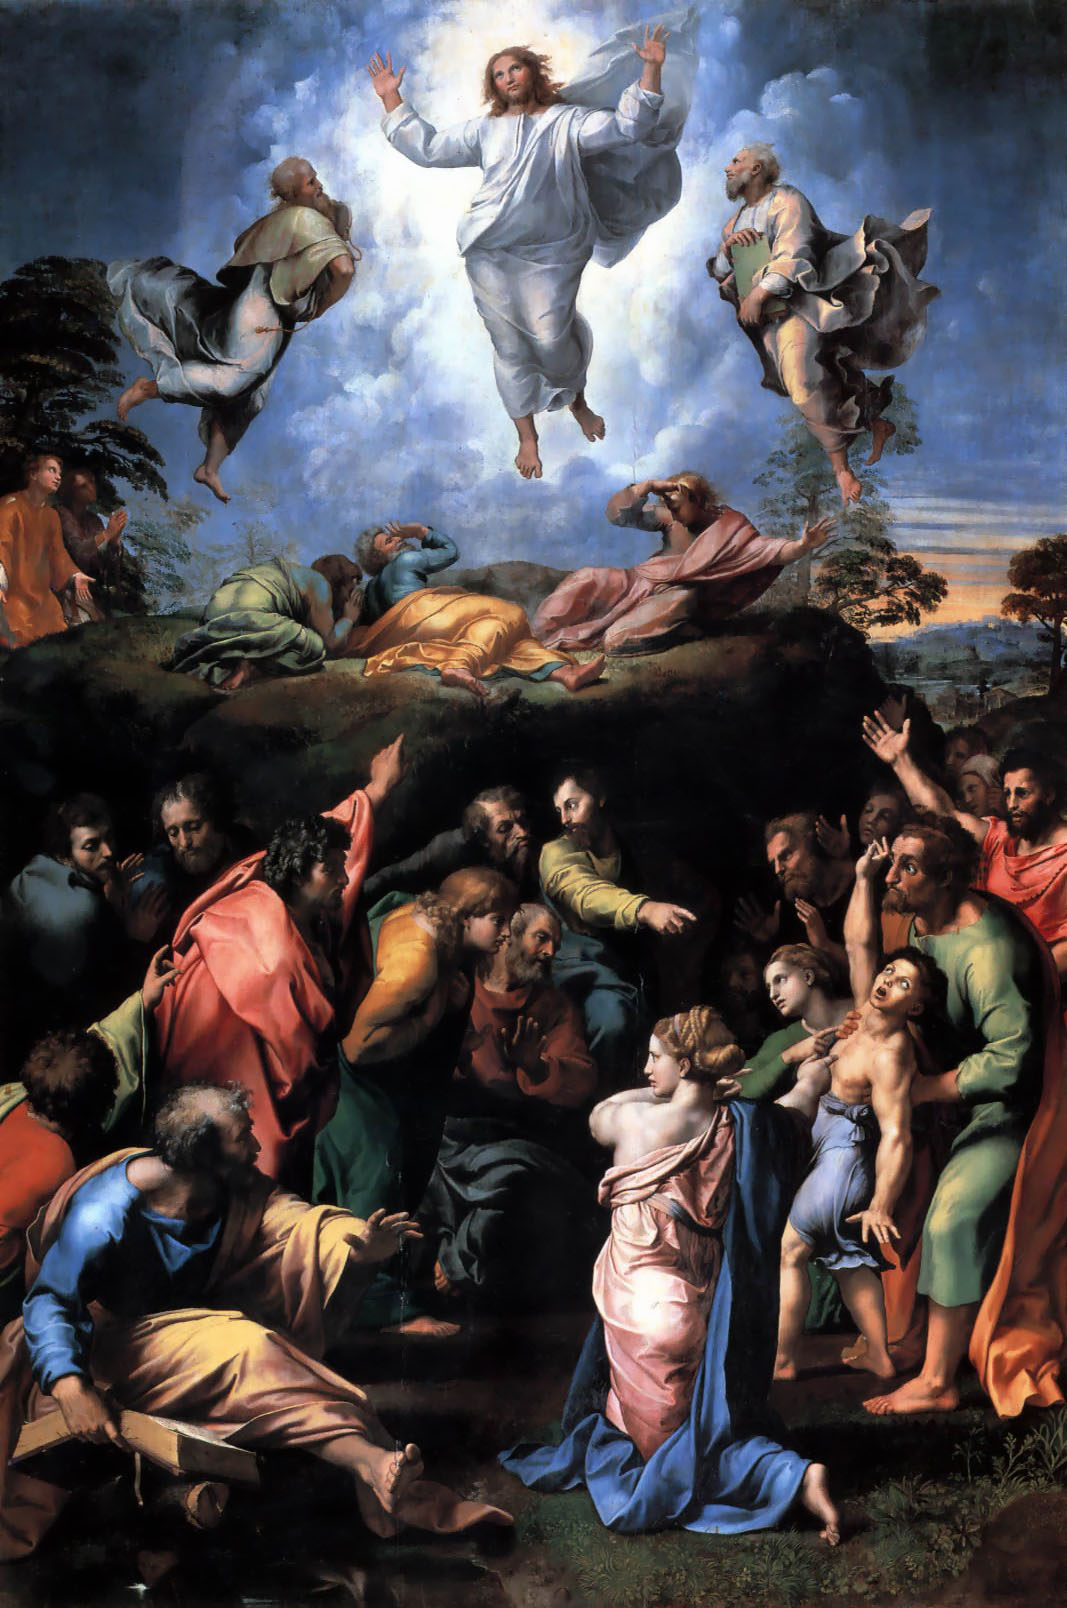 http://upload.wikimedia.org/wikipedia/commons/5/51/Transfiguration_Raphael.jpg